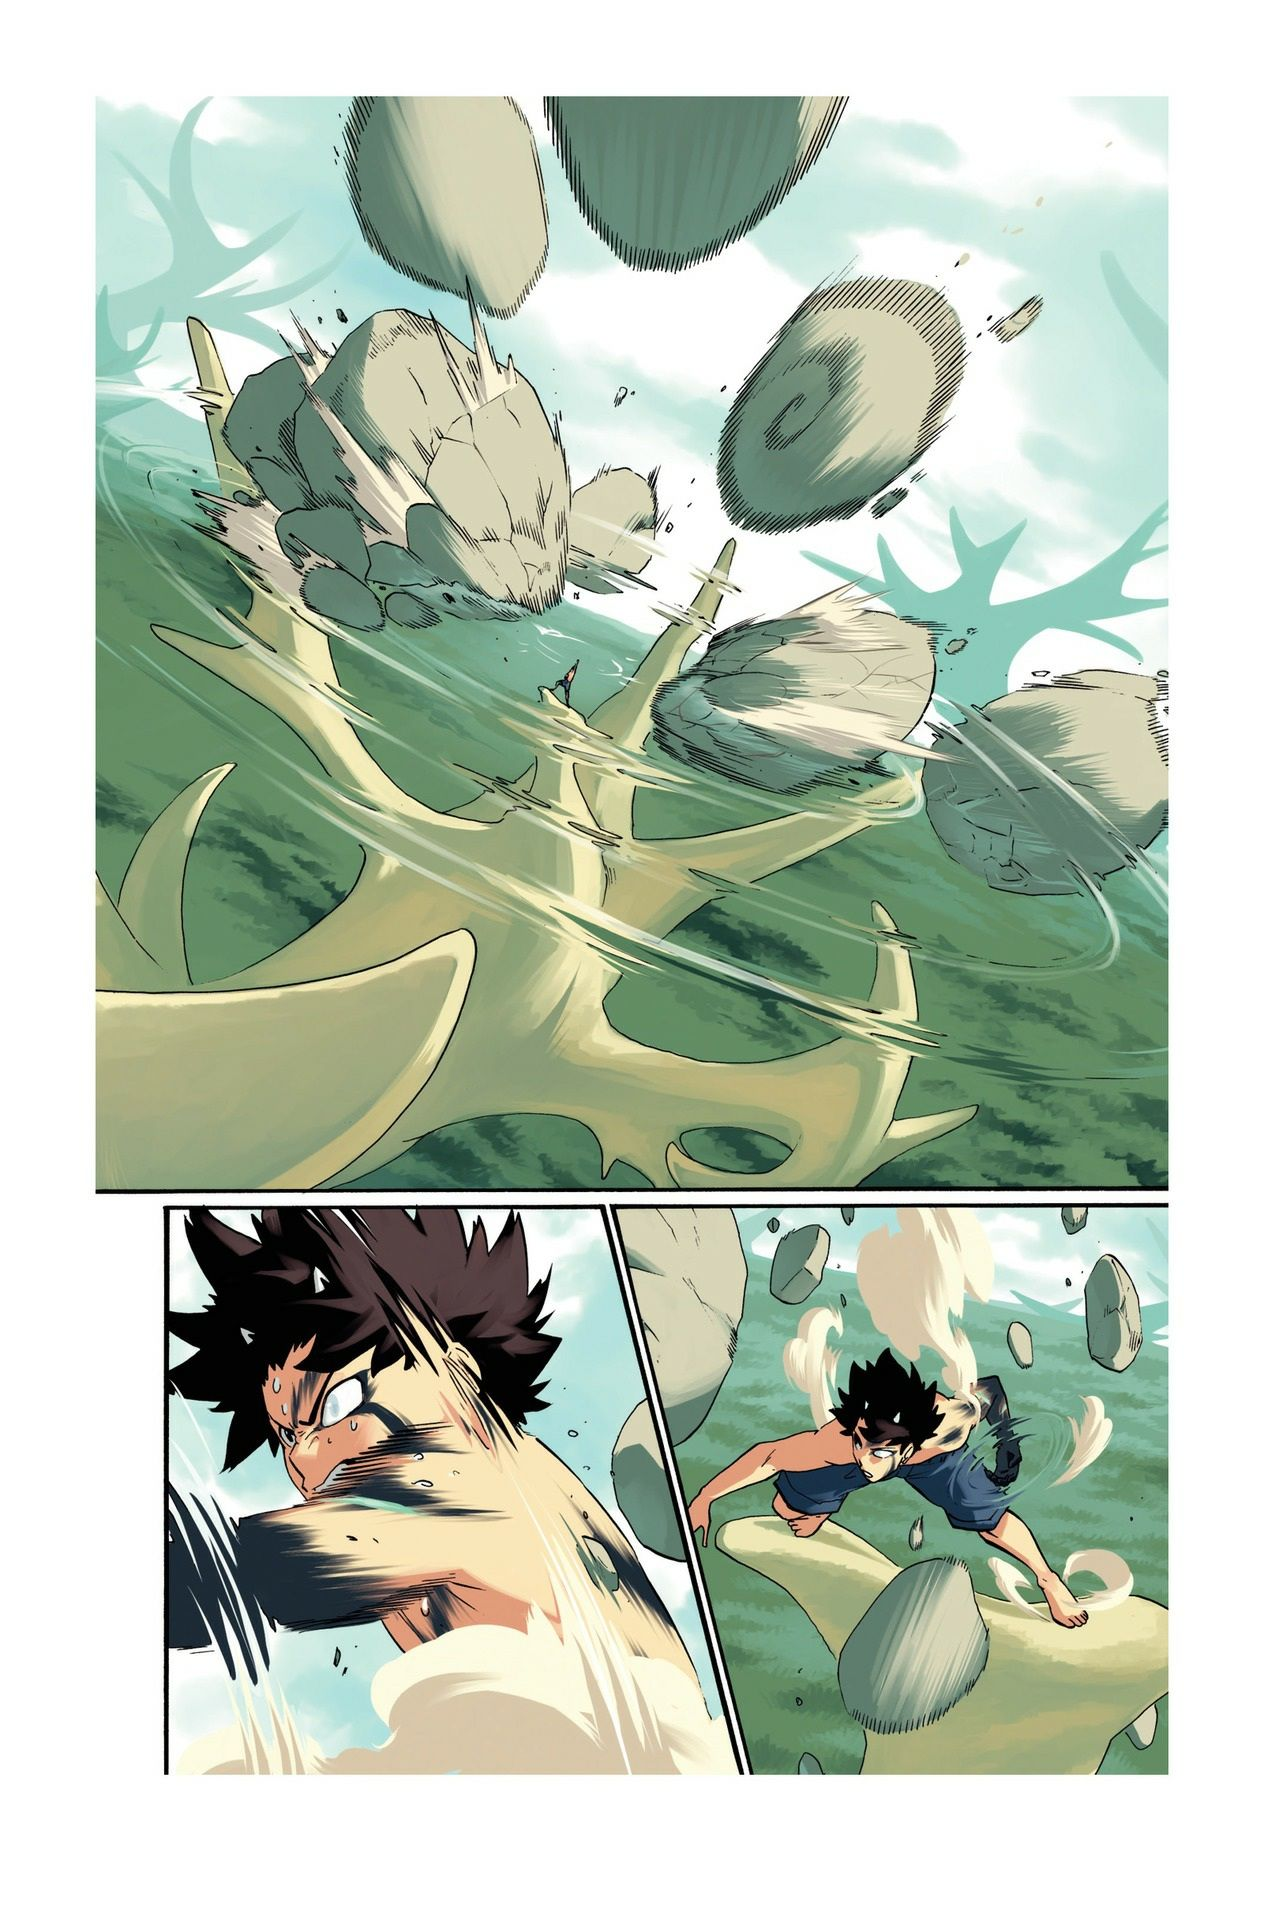 Radiant Tome 9 Lecture En Ligne : radiant, lecture, ligne, Radiant, Anime, Character, Design,, Aesthetic, Anime,, Ghost, World